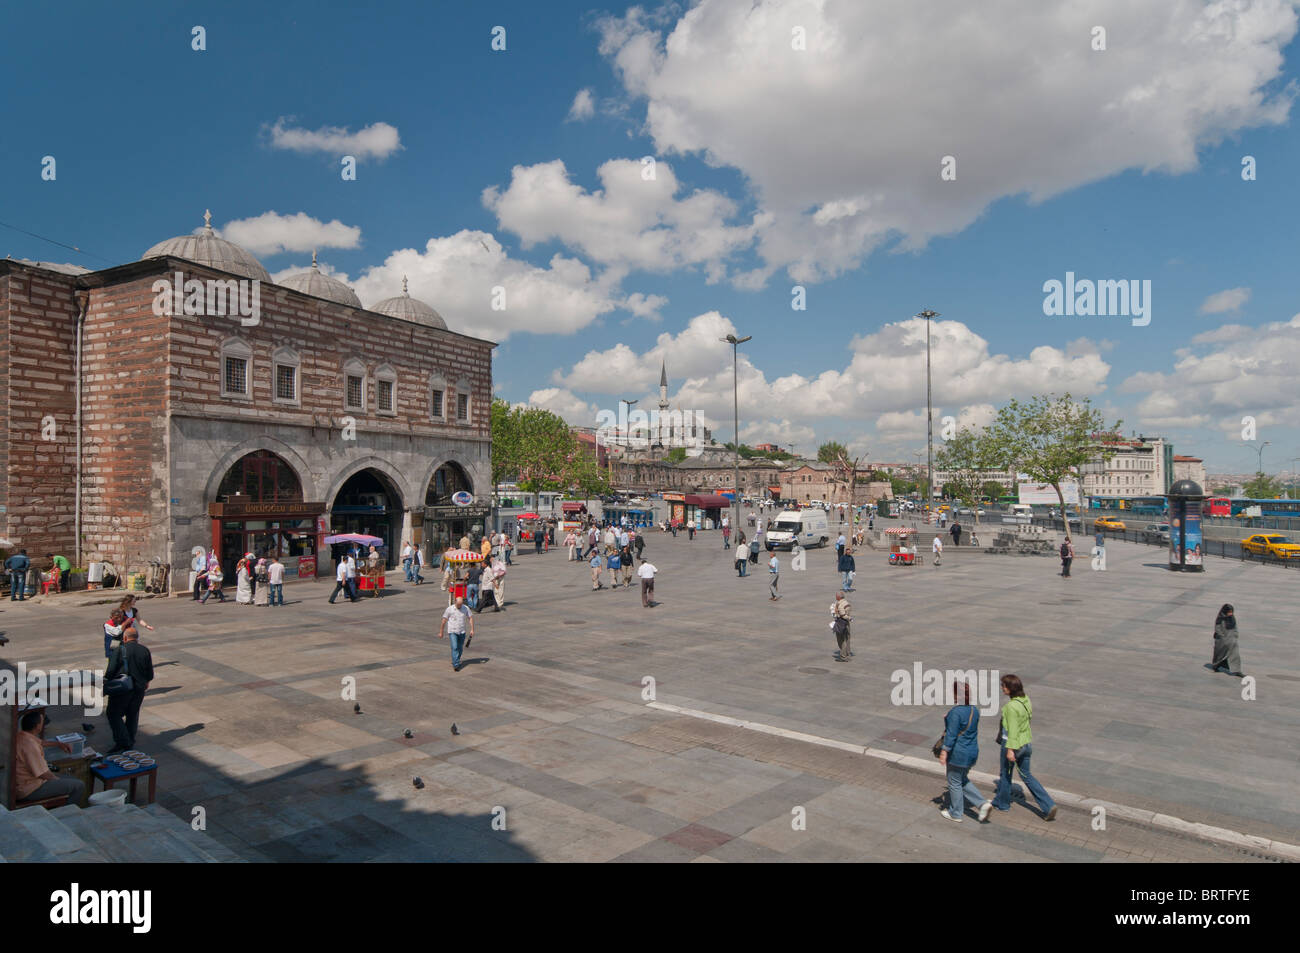 Egyptian bazaar and Rustem pasa mosque in the backround , Eminonu place,istanbul,Turkey - Stock Image